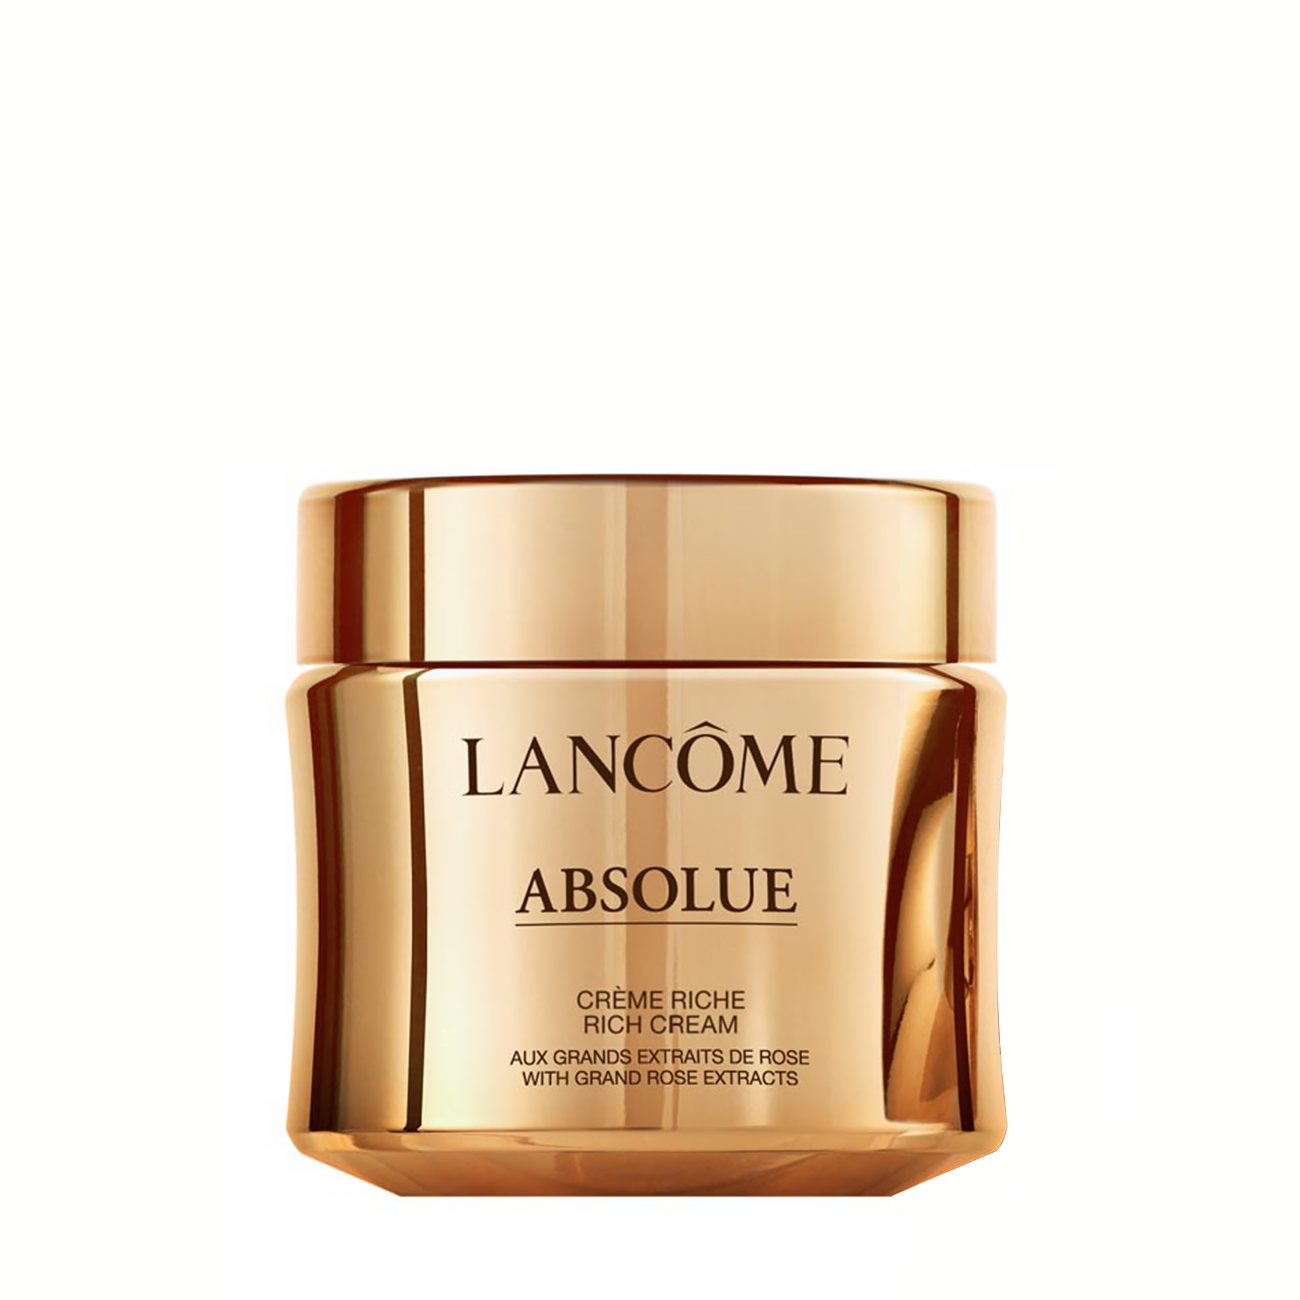 Absolue Cream Rich 60ml Lancôme imagine 2021 bestvalue.eu